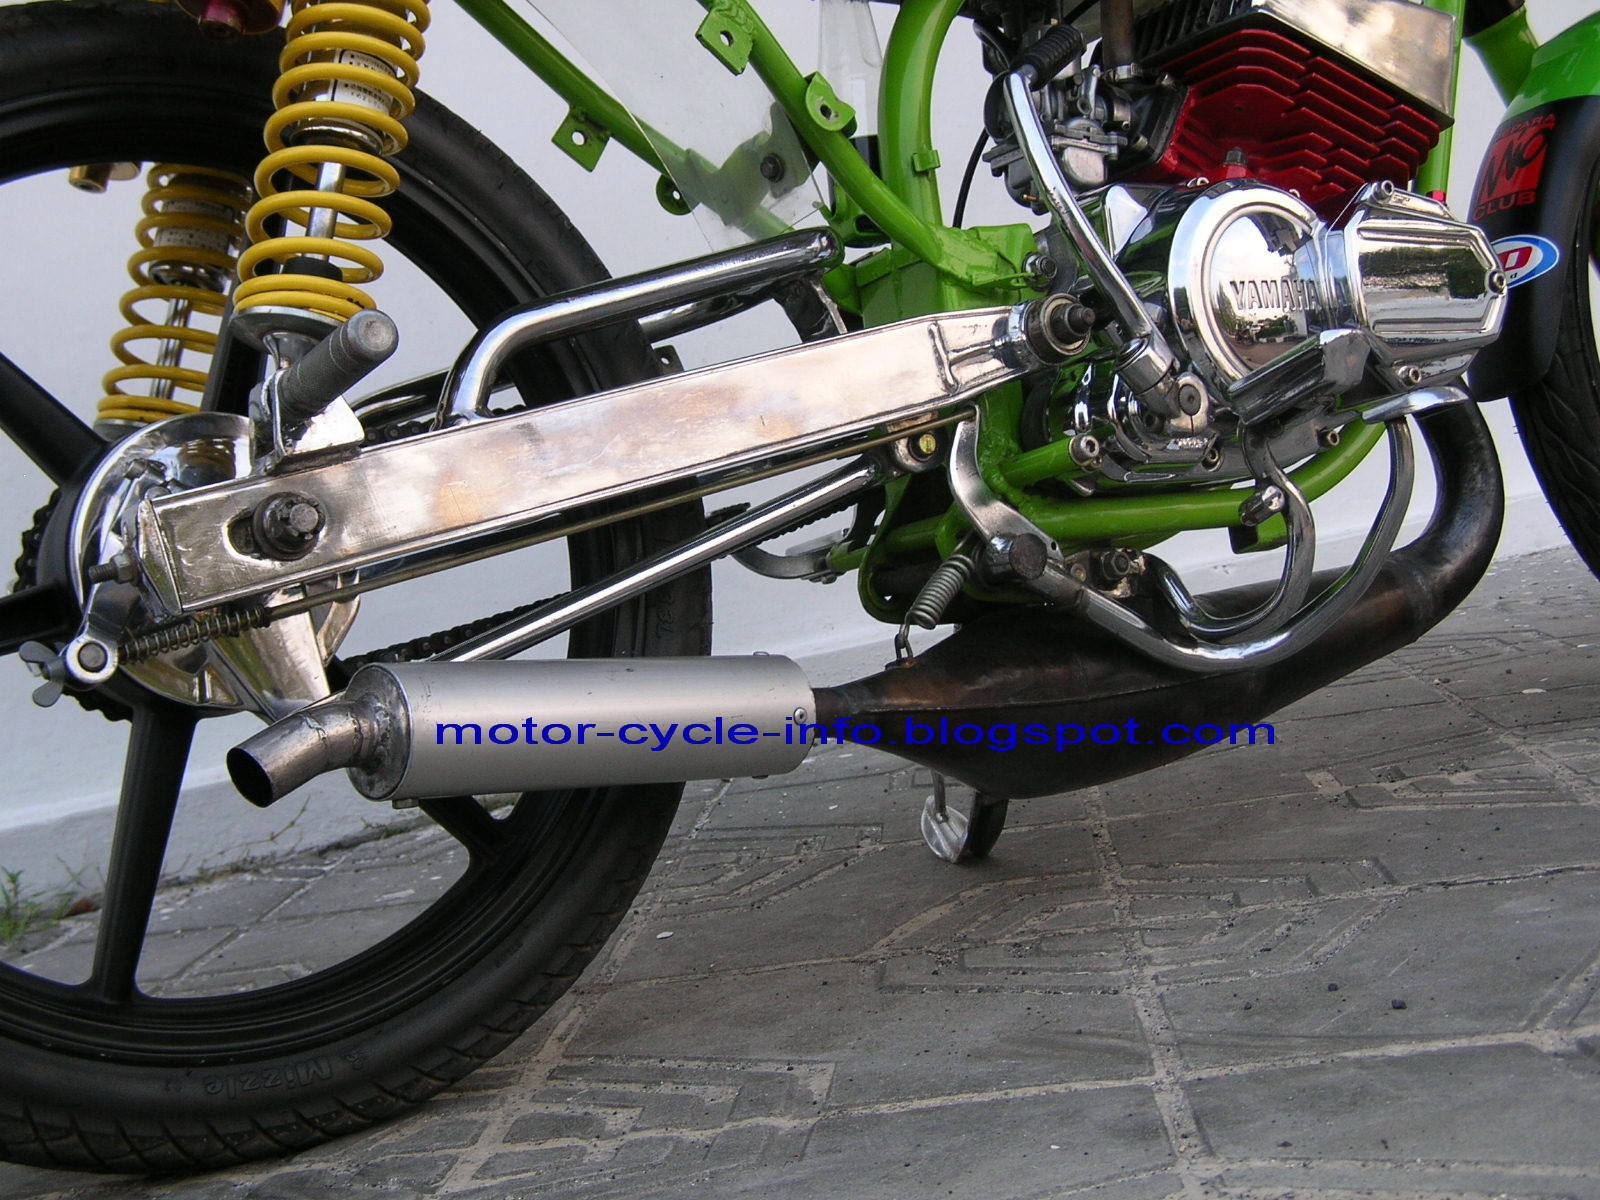 This Motor Cycle More Attractive Ready For A Contest Motor Event